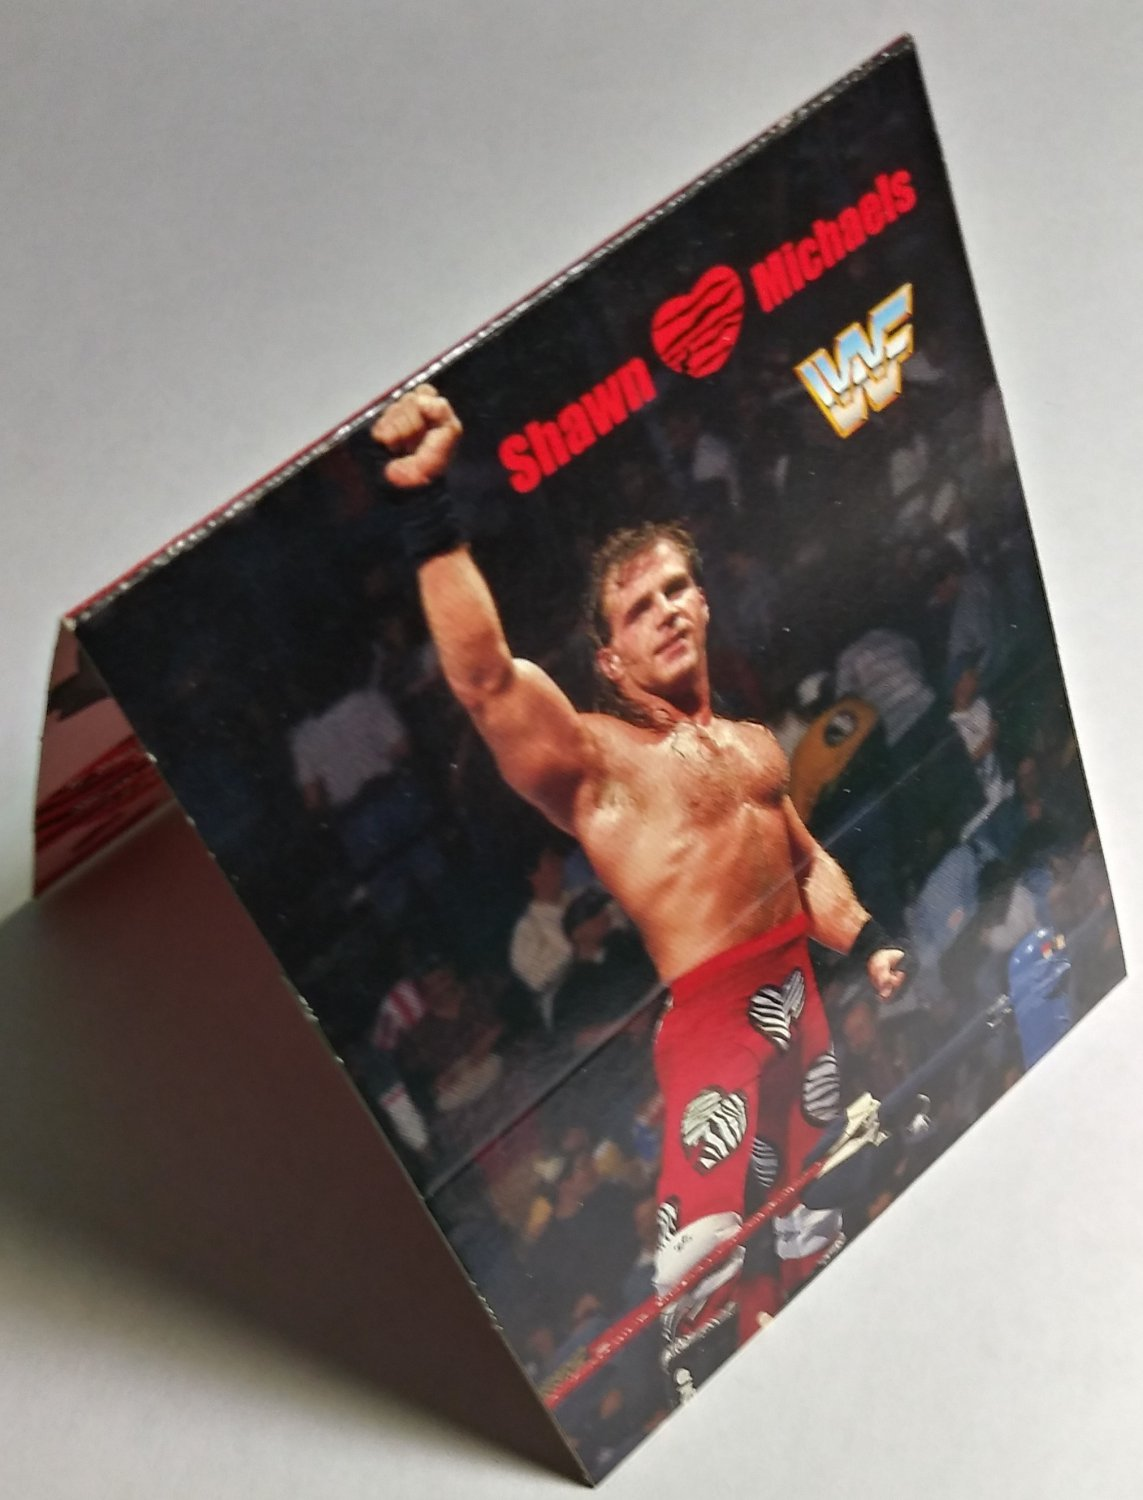 SHAWN EDWARDS WWF Real Action Pop-Up Card No. 1